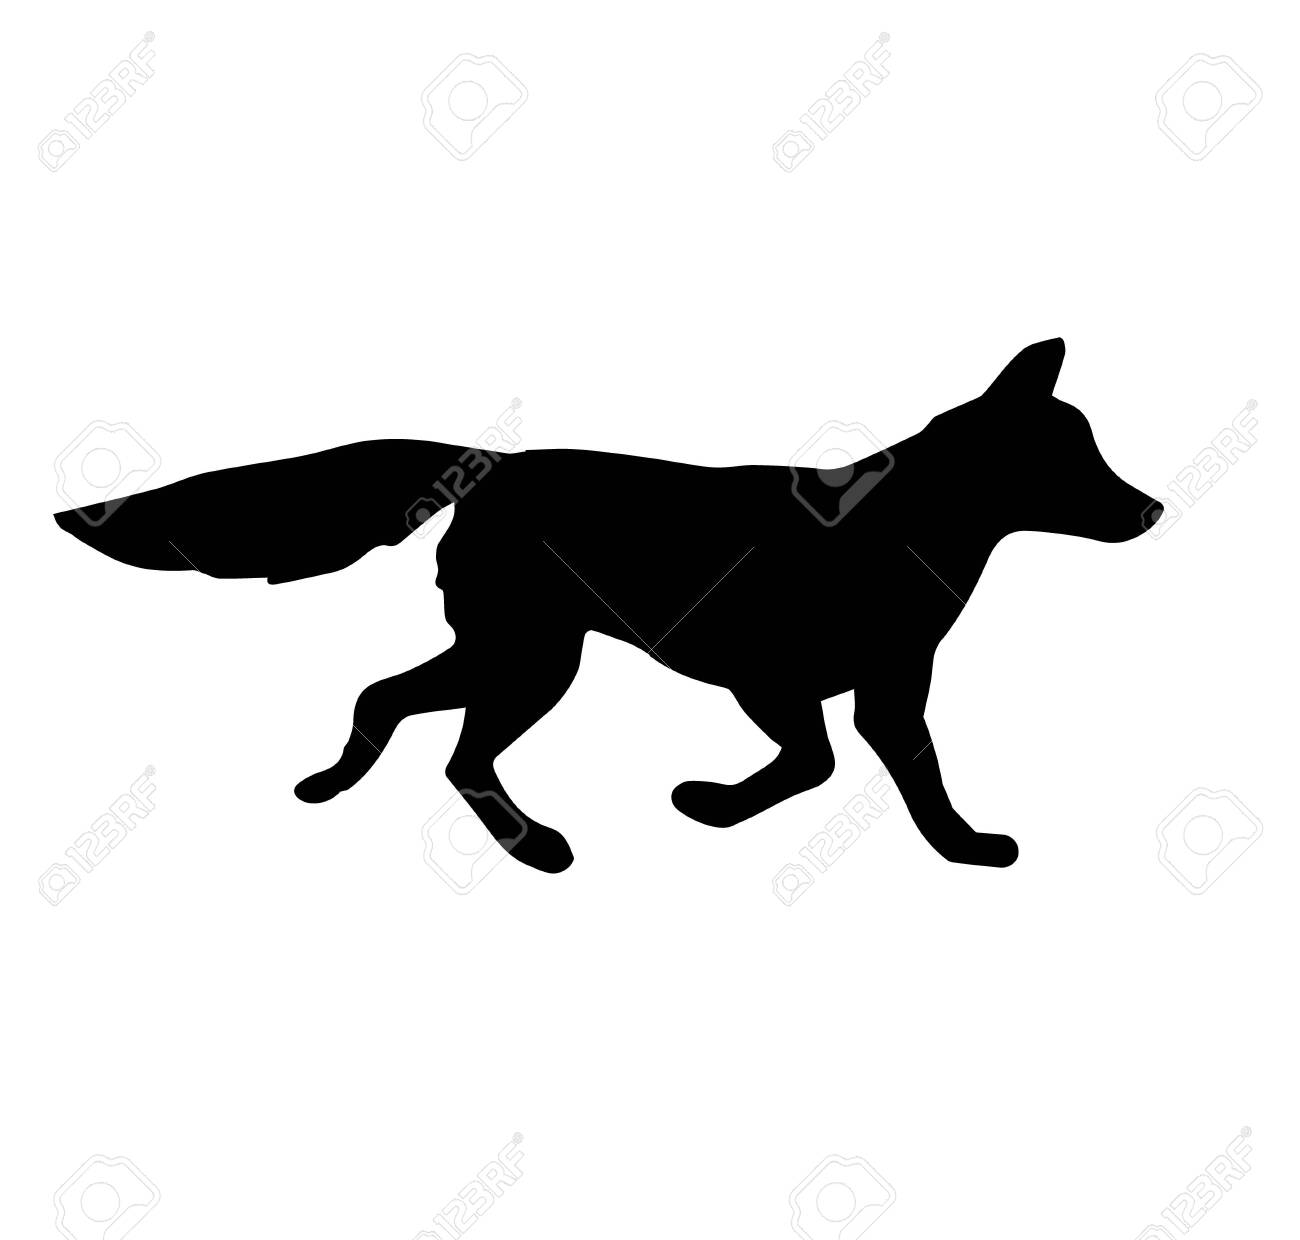 Vector black silhouette of fox isolated on white background - 128423818